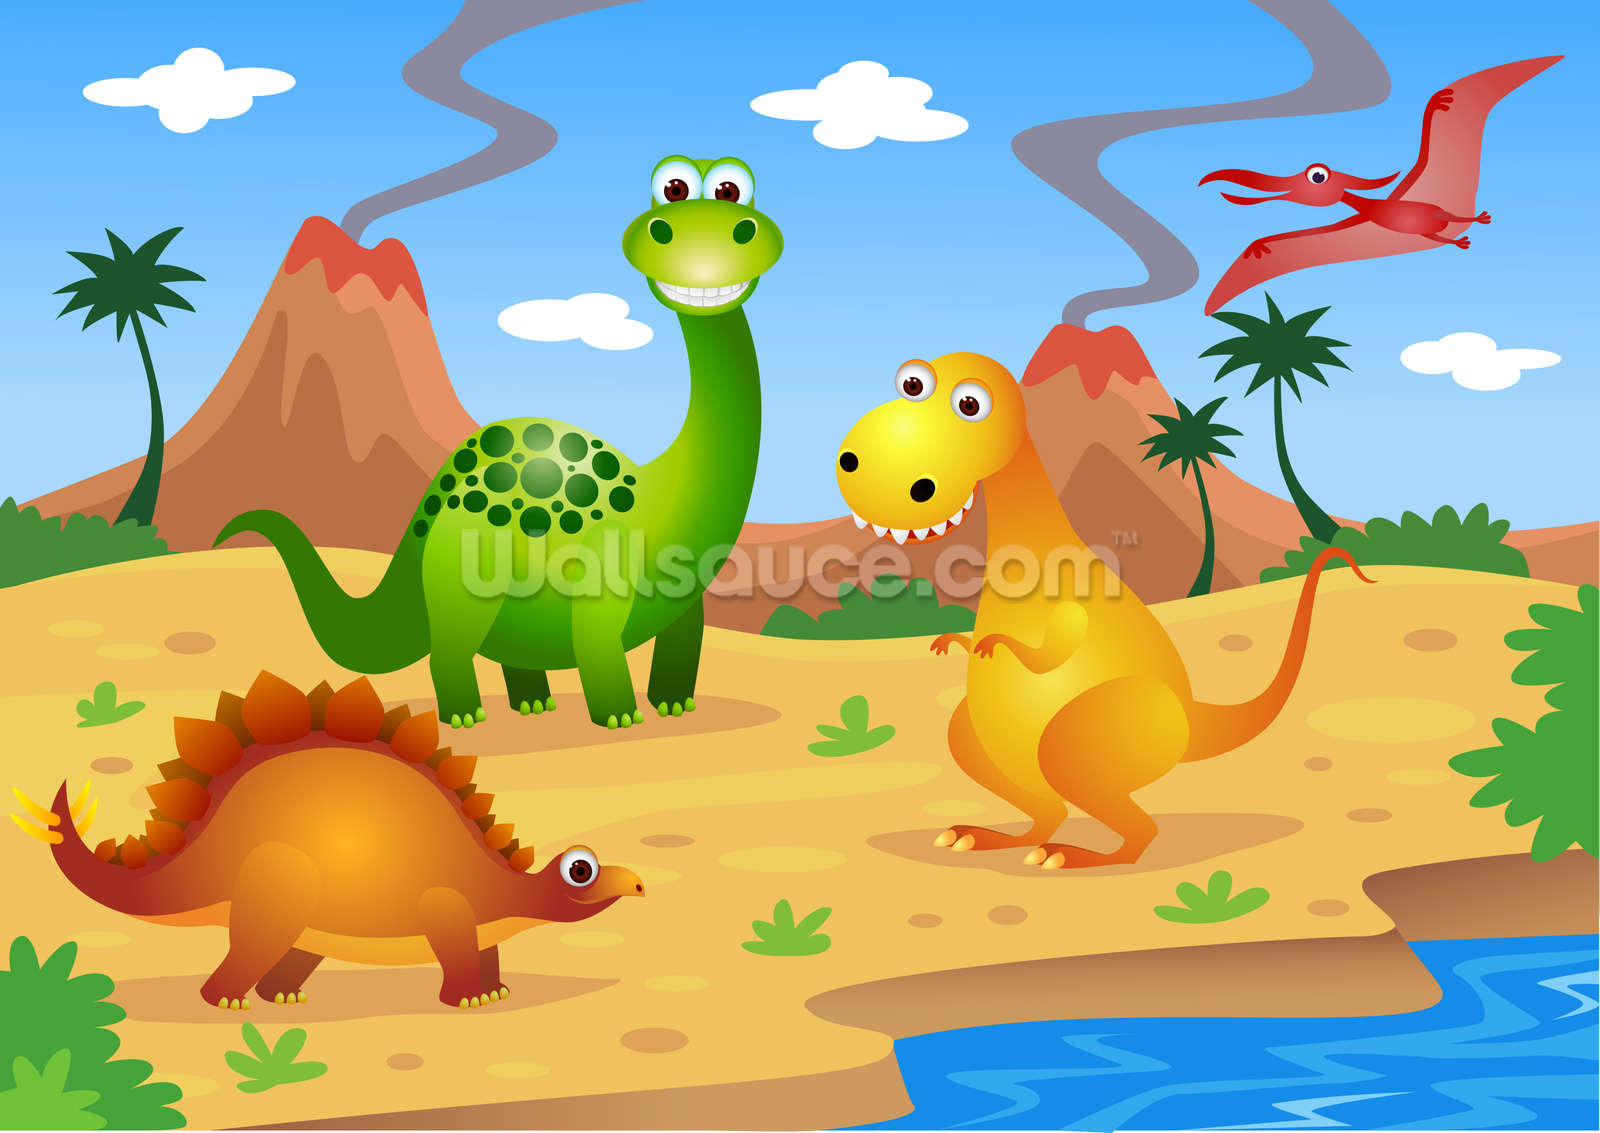 Fun Dinosaurs Wallpaper Wall Mural Wallsauce Usa